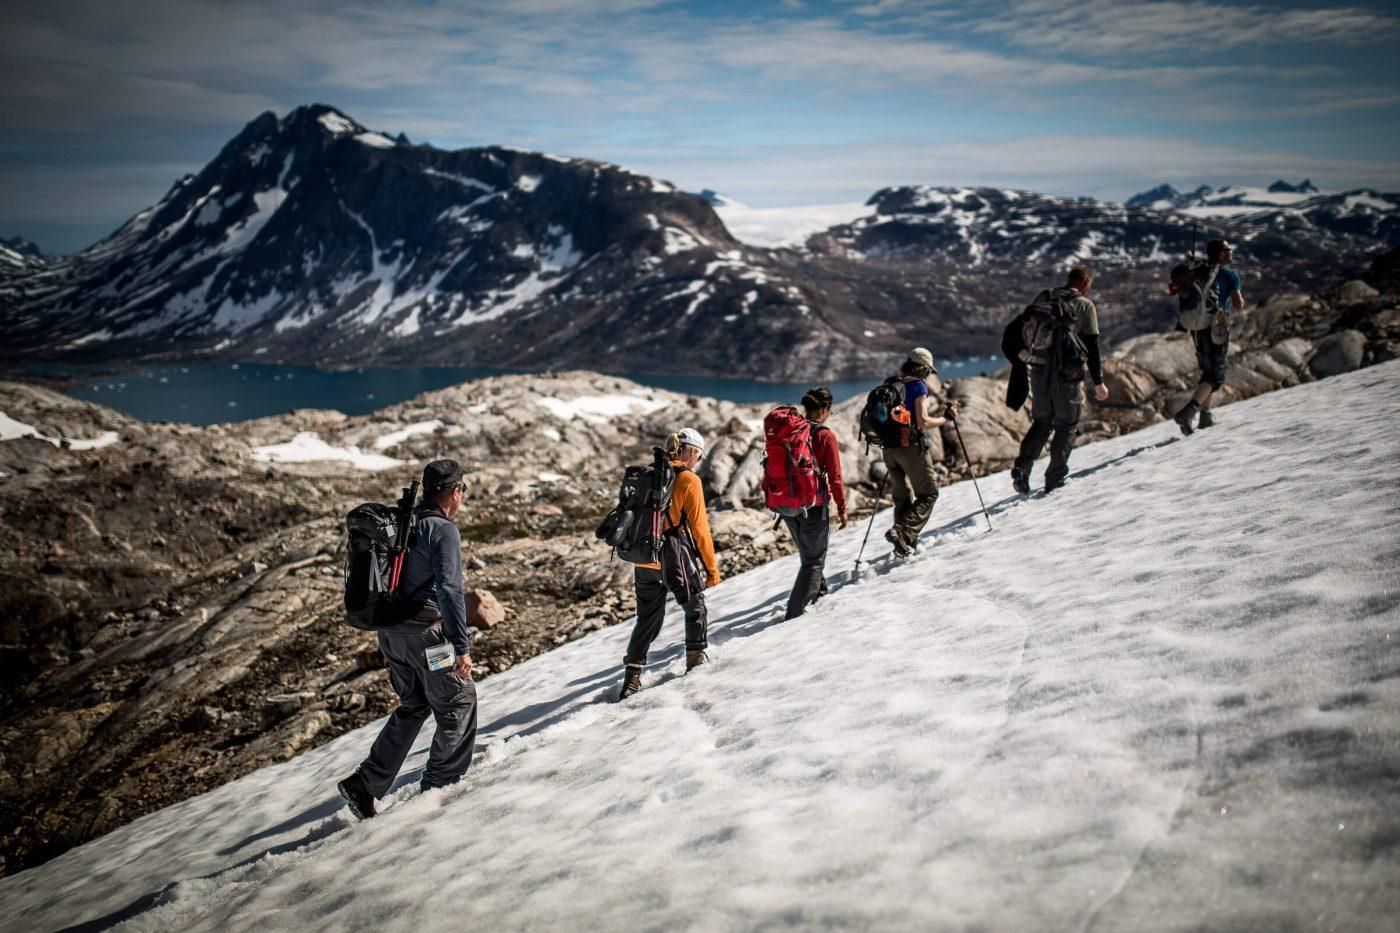 Greenland Travel hikers passing through lingering snow on the mountain near Tiniteqilaaq in East Greenland. By Mads Pihl